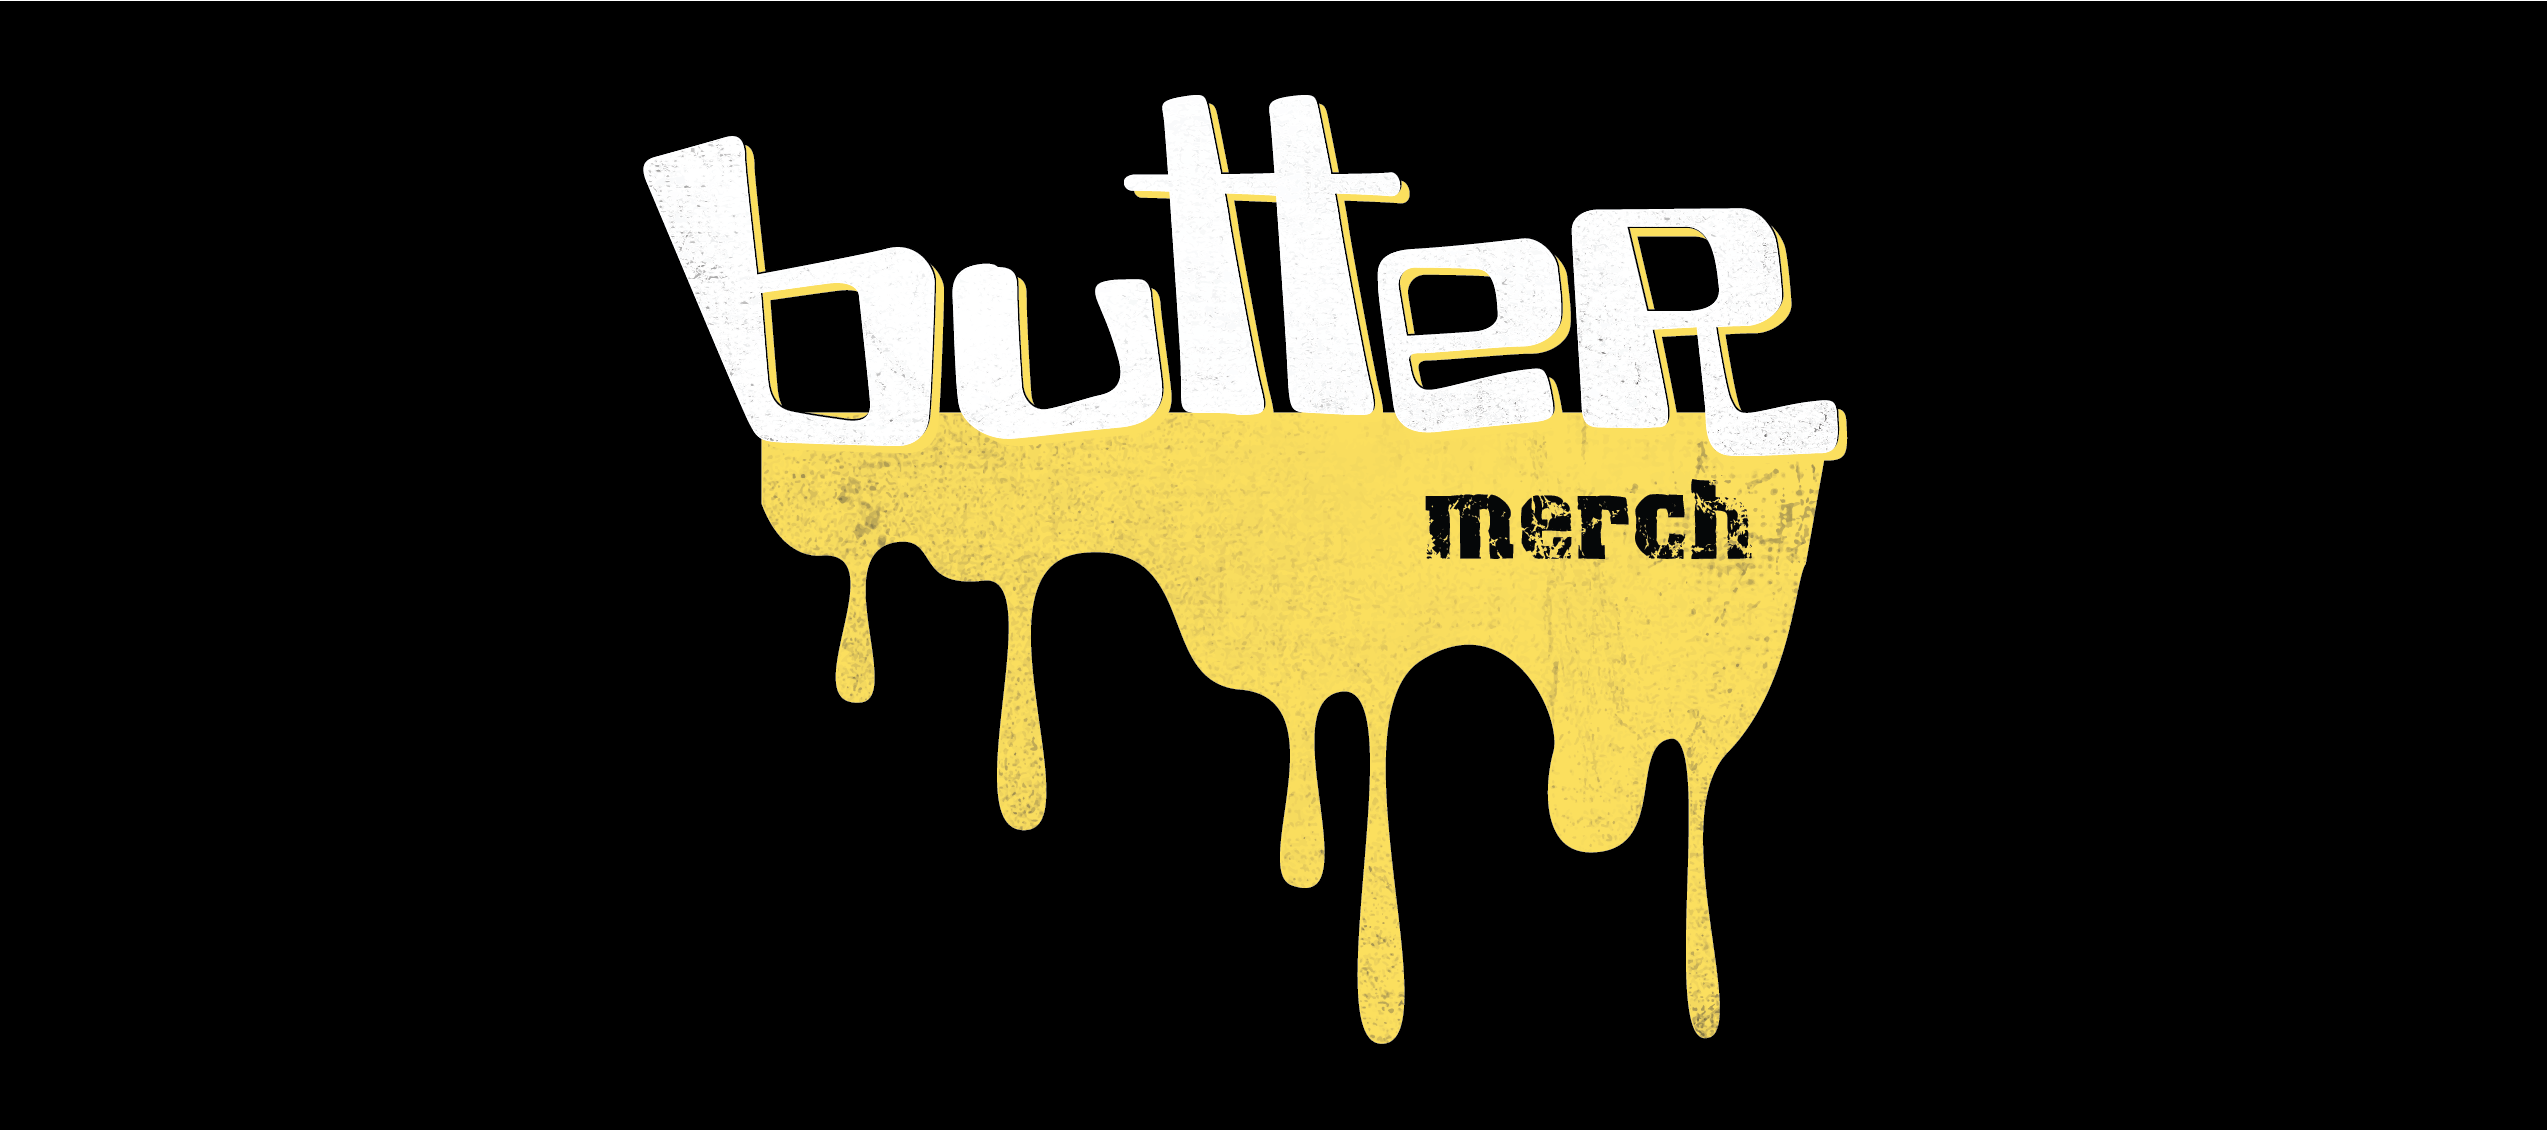 SUPPORT THE BUTTER STAFF